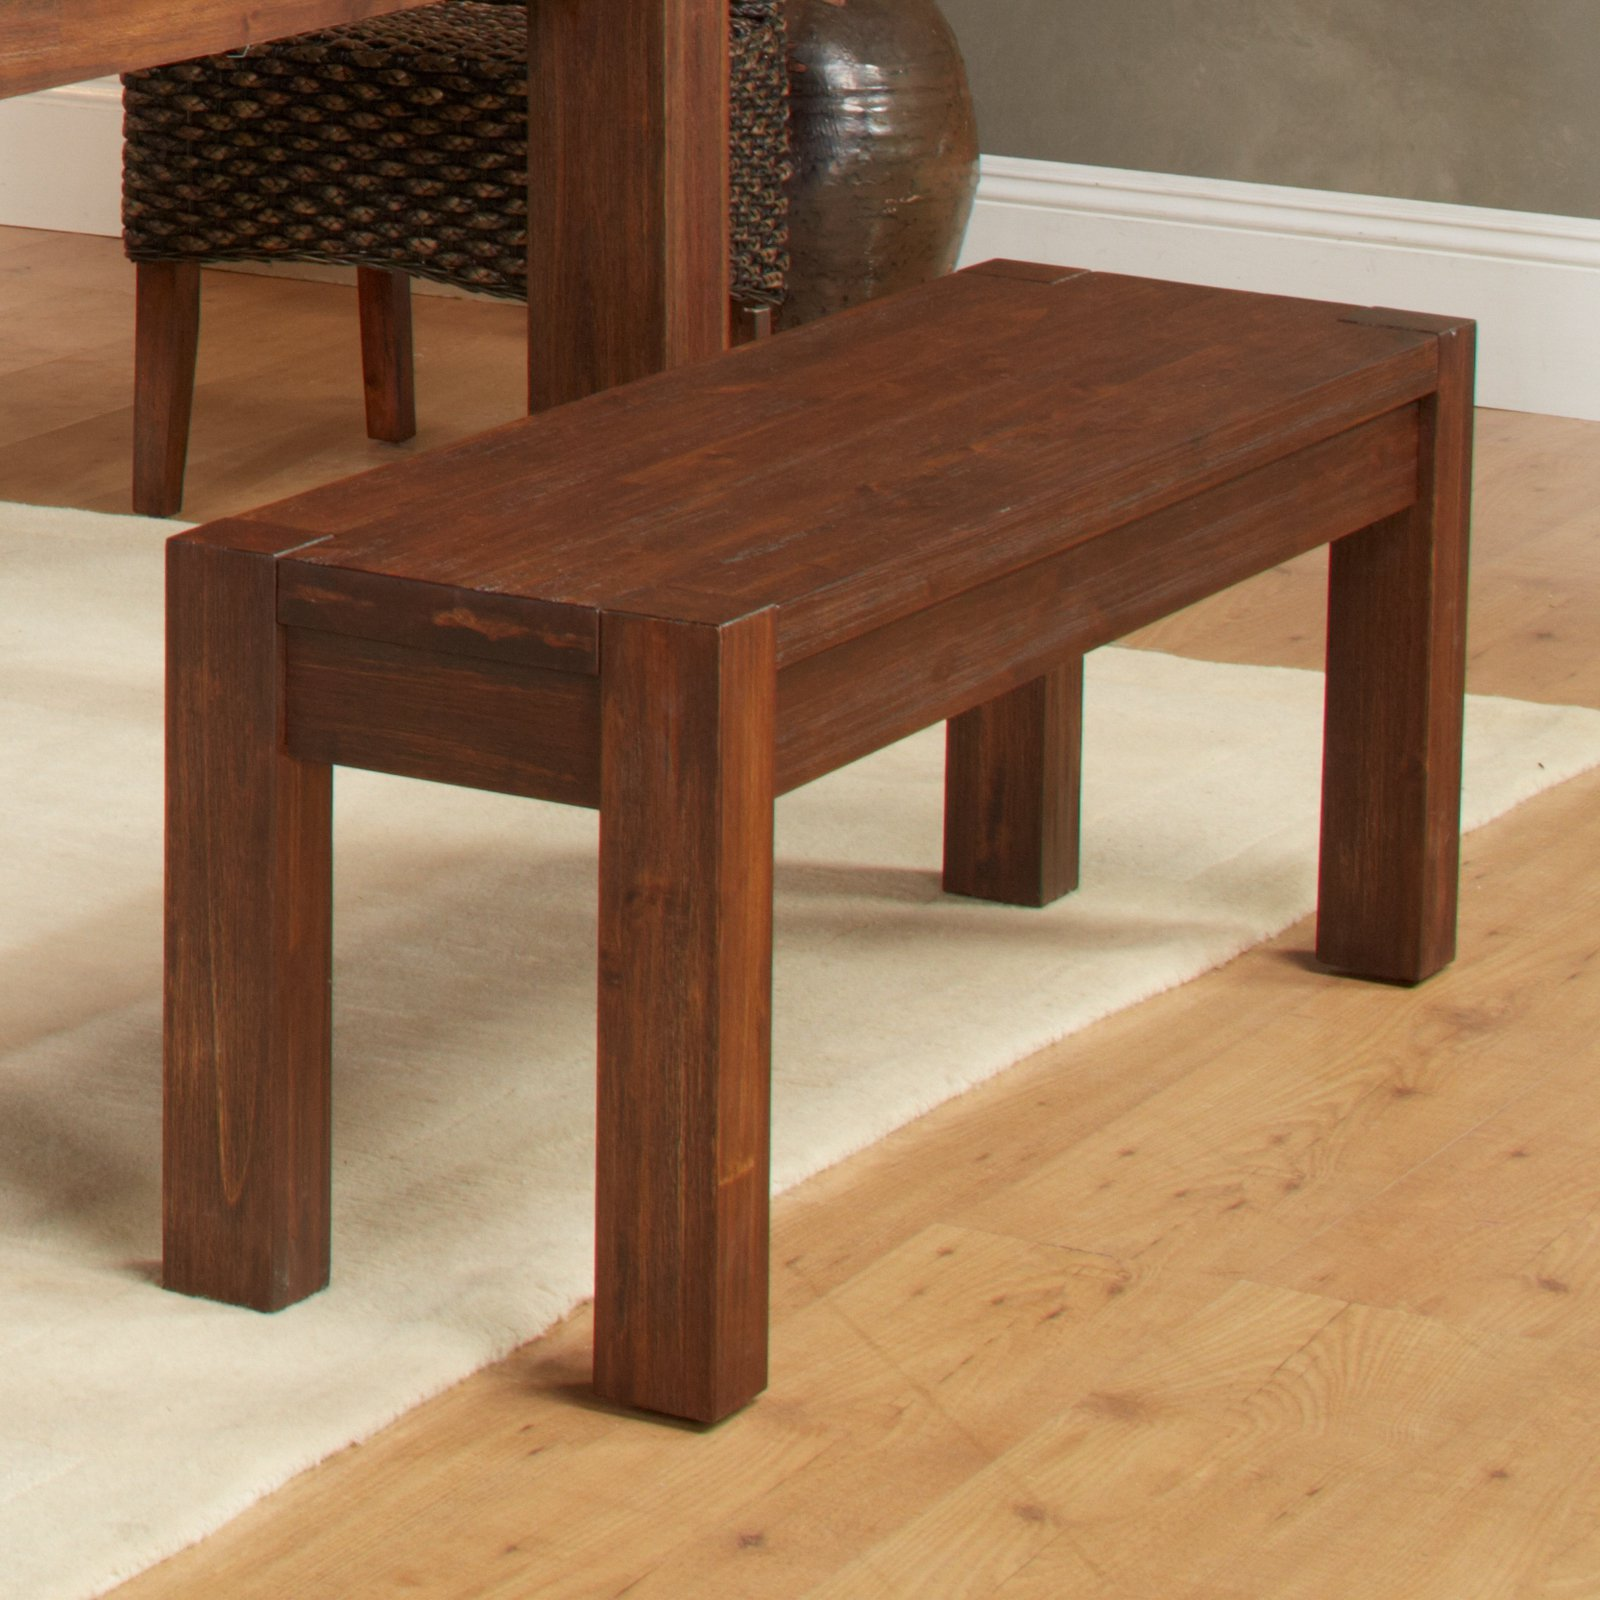 Modus Meadow Solid Wood Dining Bench Brick Brown by Modus Furniture International